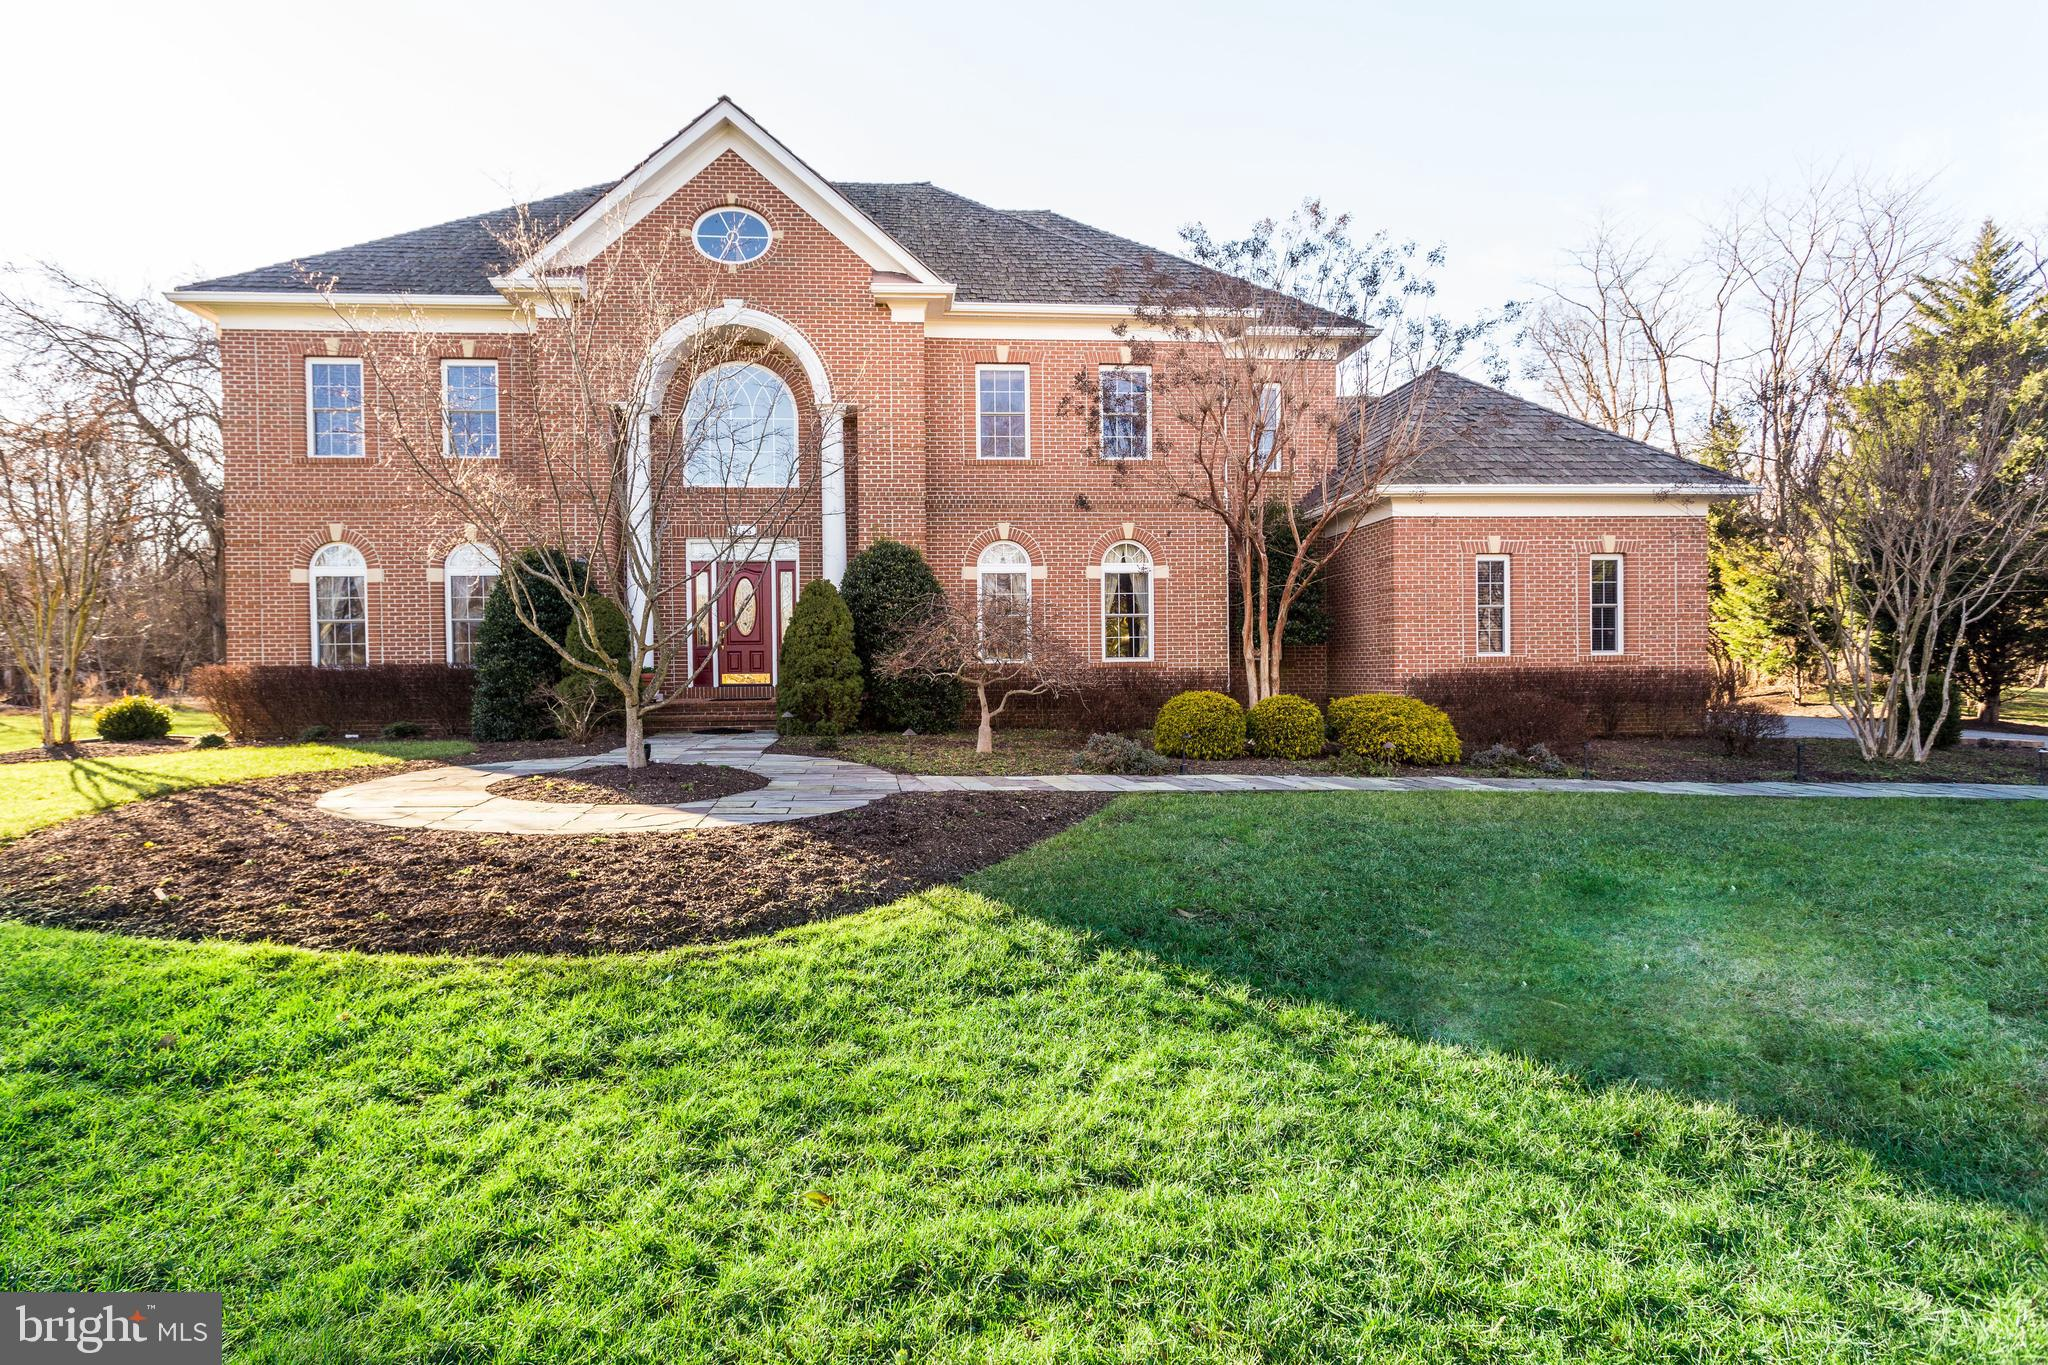 3116 SPRIGGS REQUEST WAY, BOWIE, MD 20721